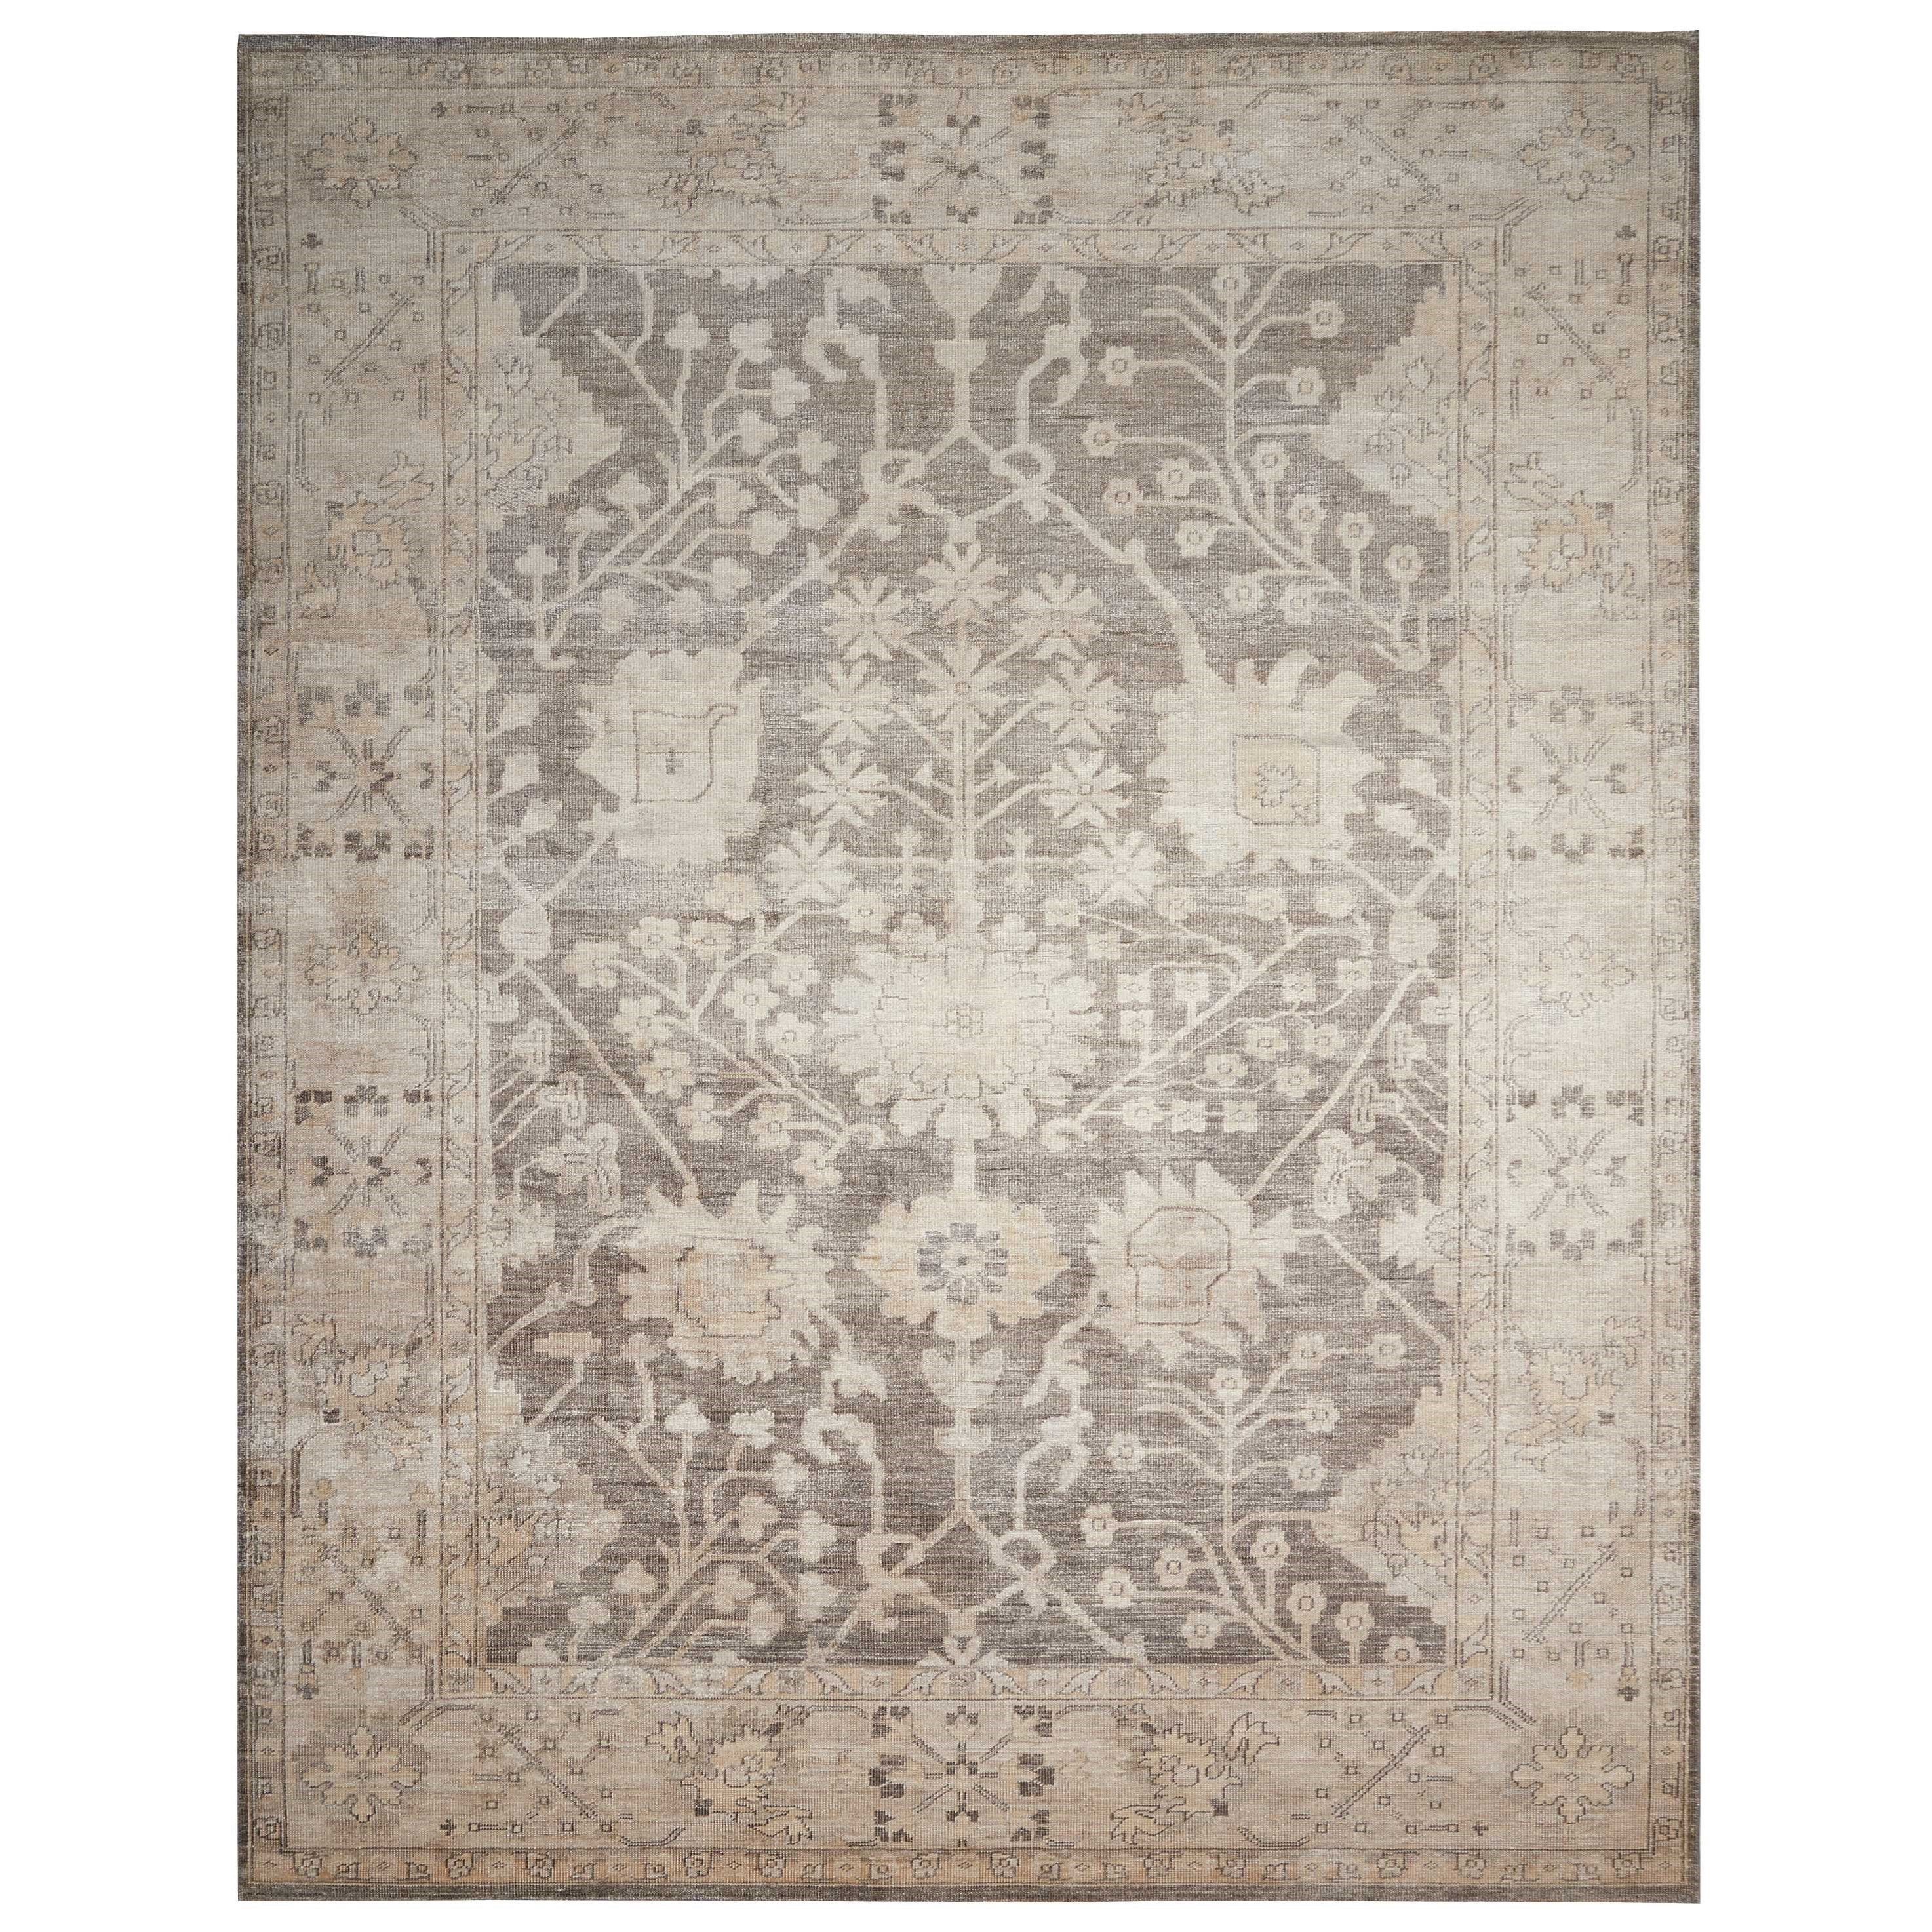 """Aldora1 5'6"""" X 8' Aubergine Rug by Nourison at Home Collections Furniture"""